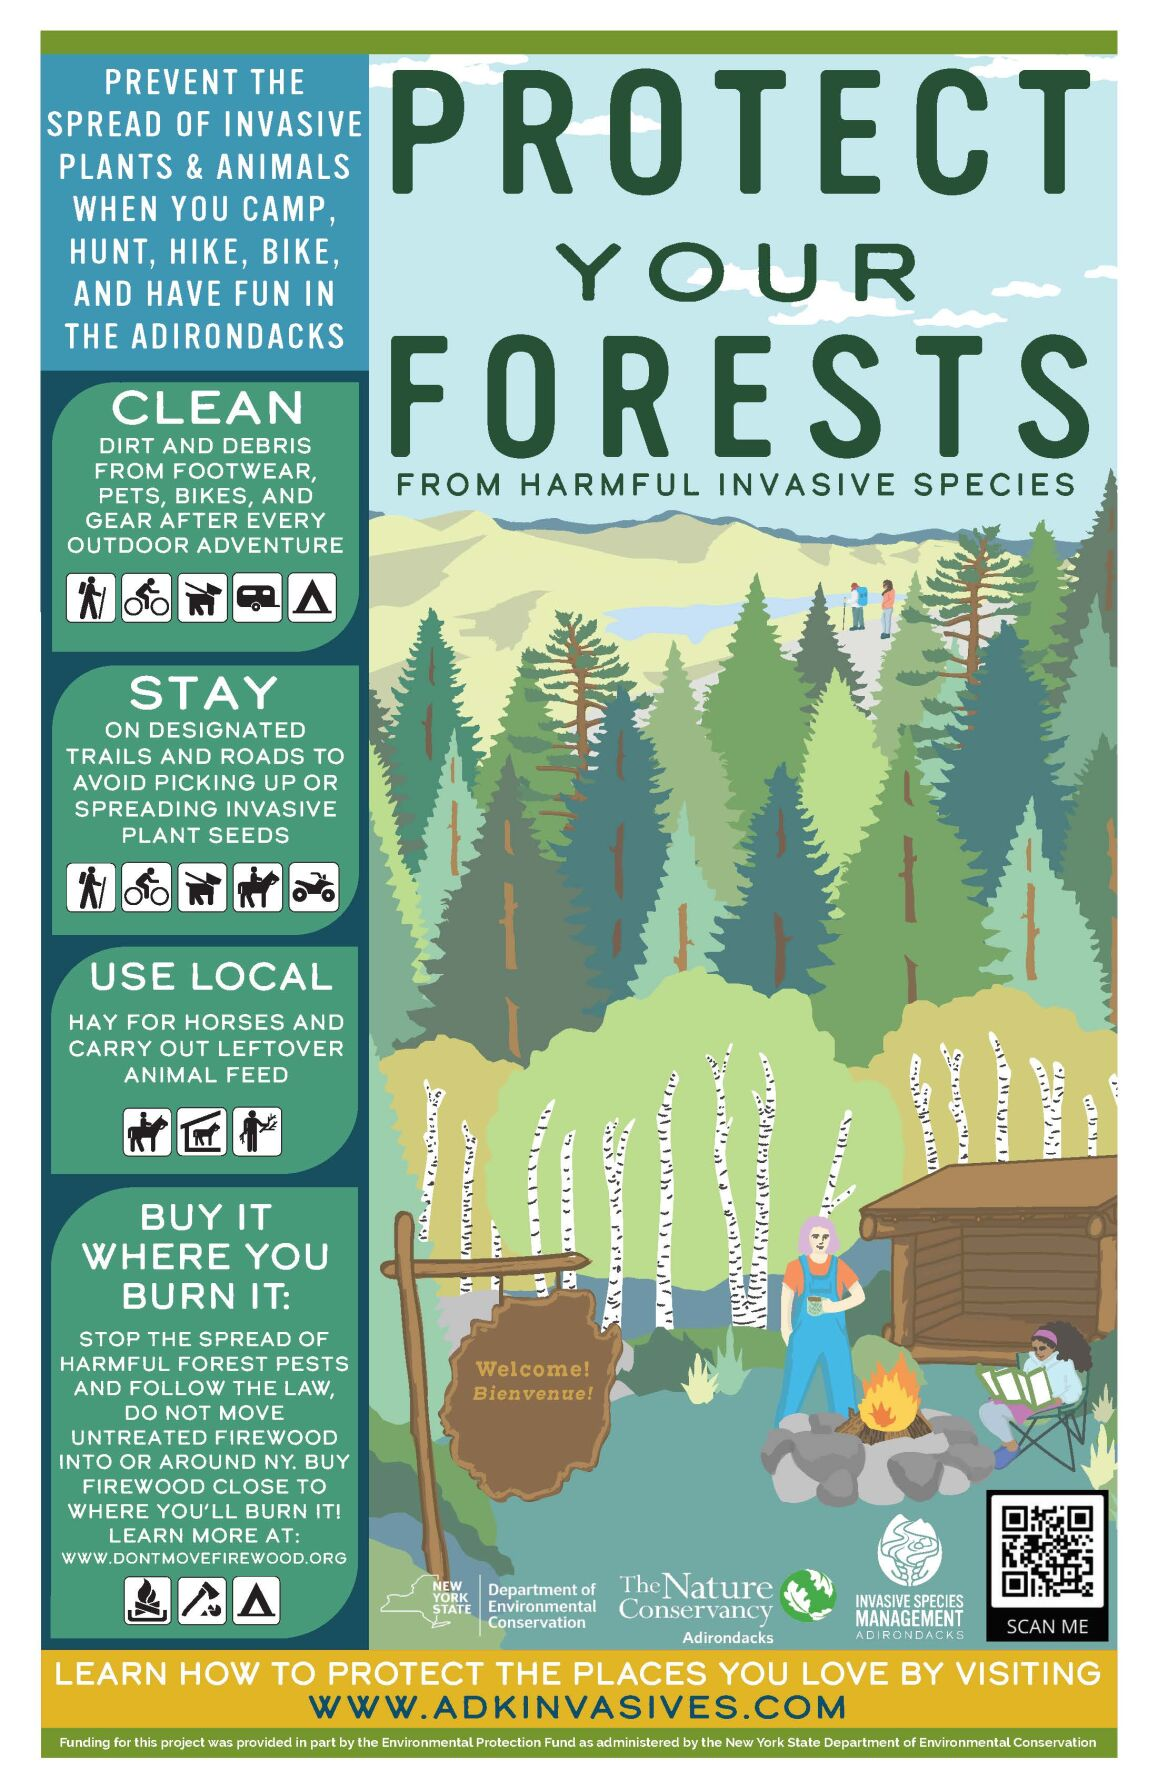 APIPP_PROTECT_YOUR_FORESTS_POSTER.jpg